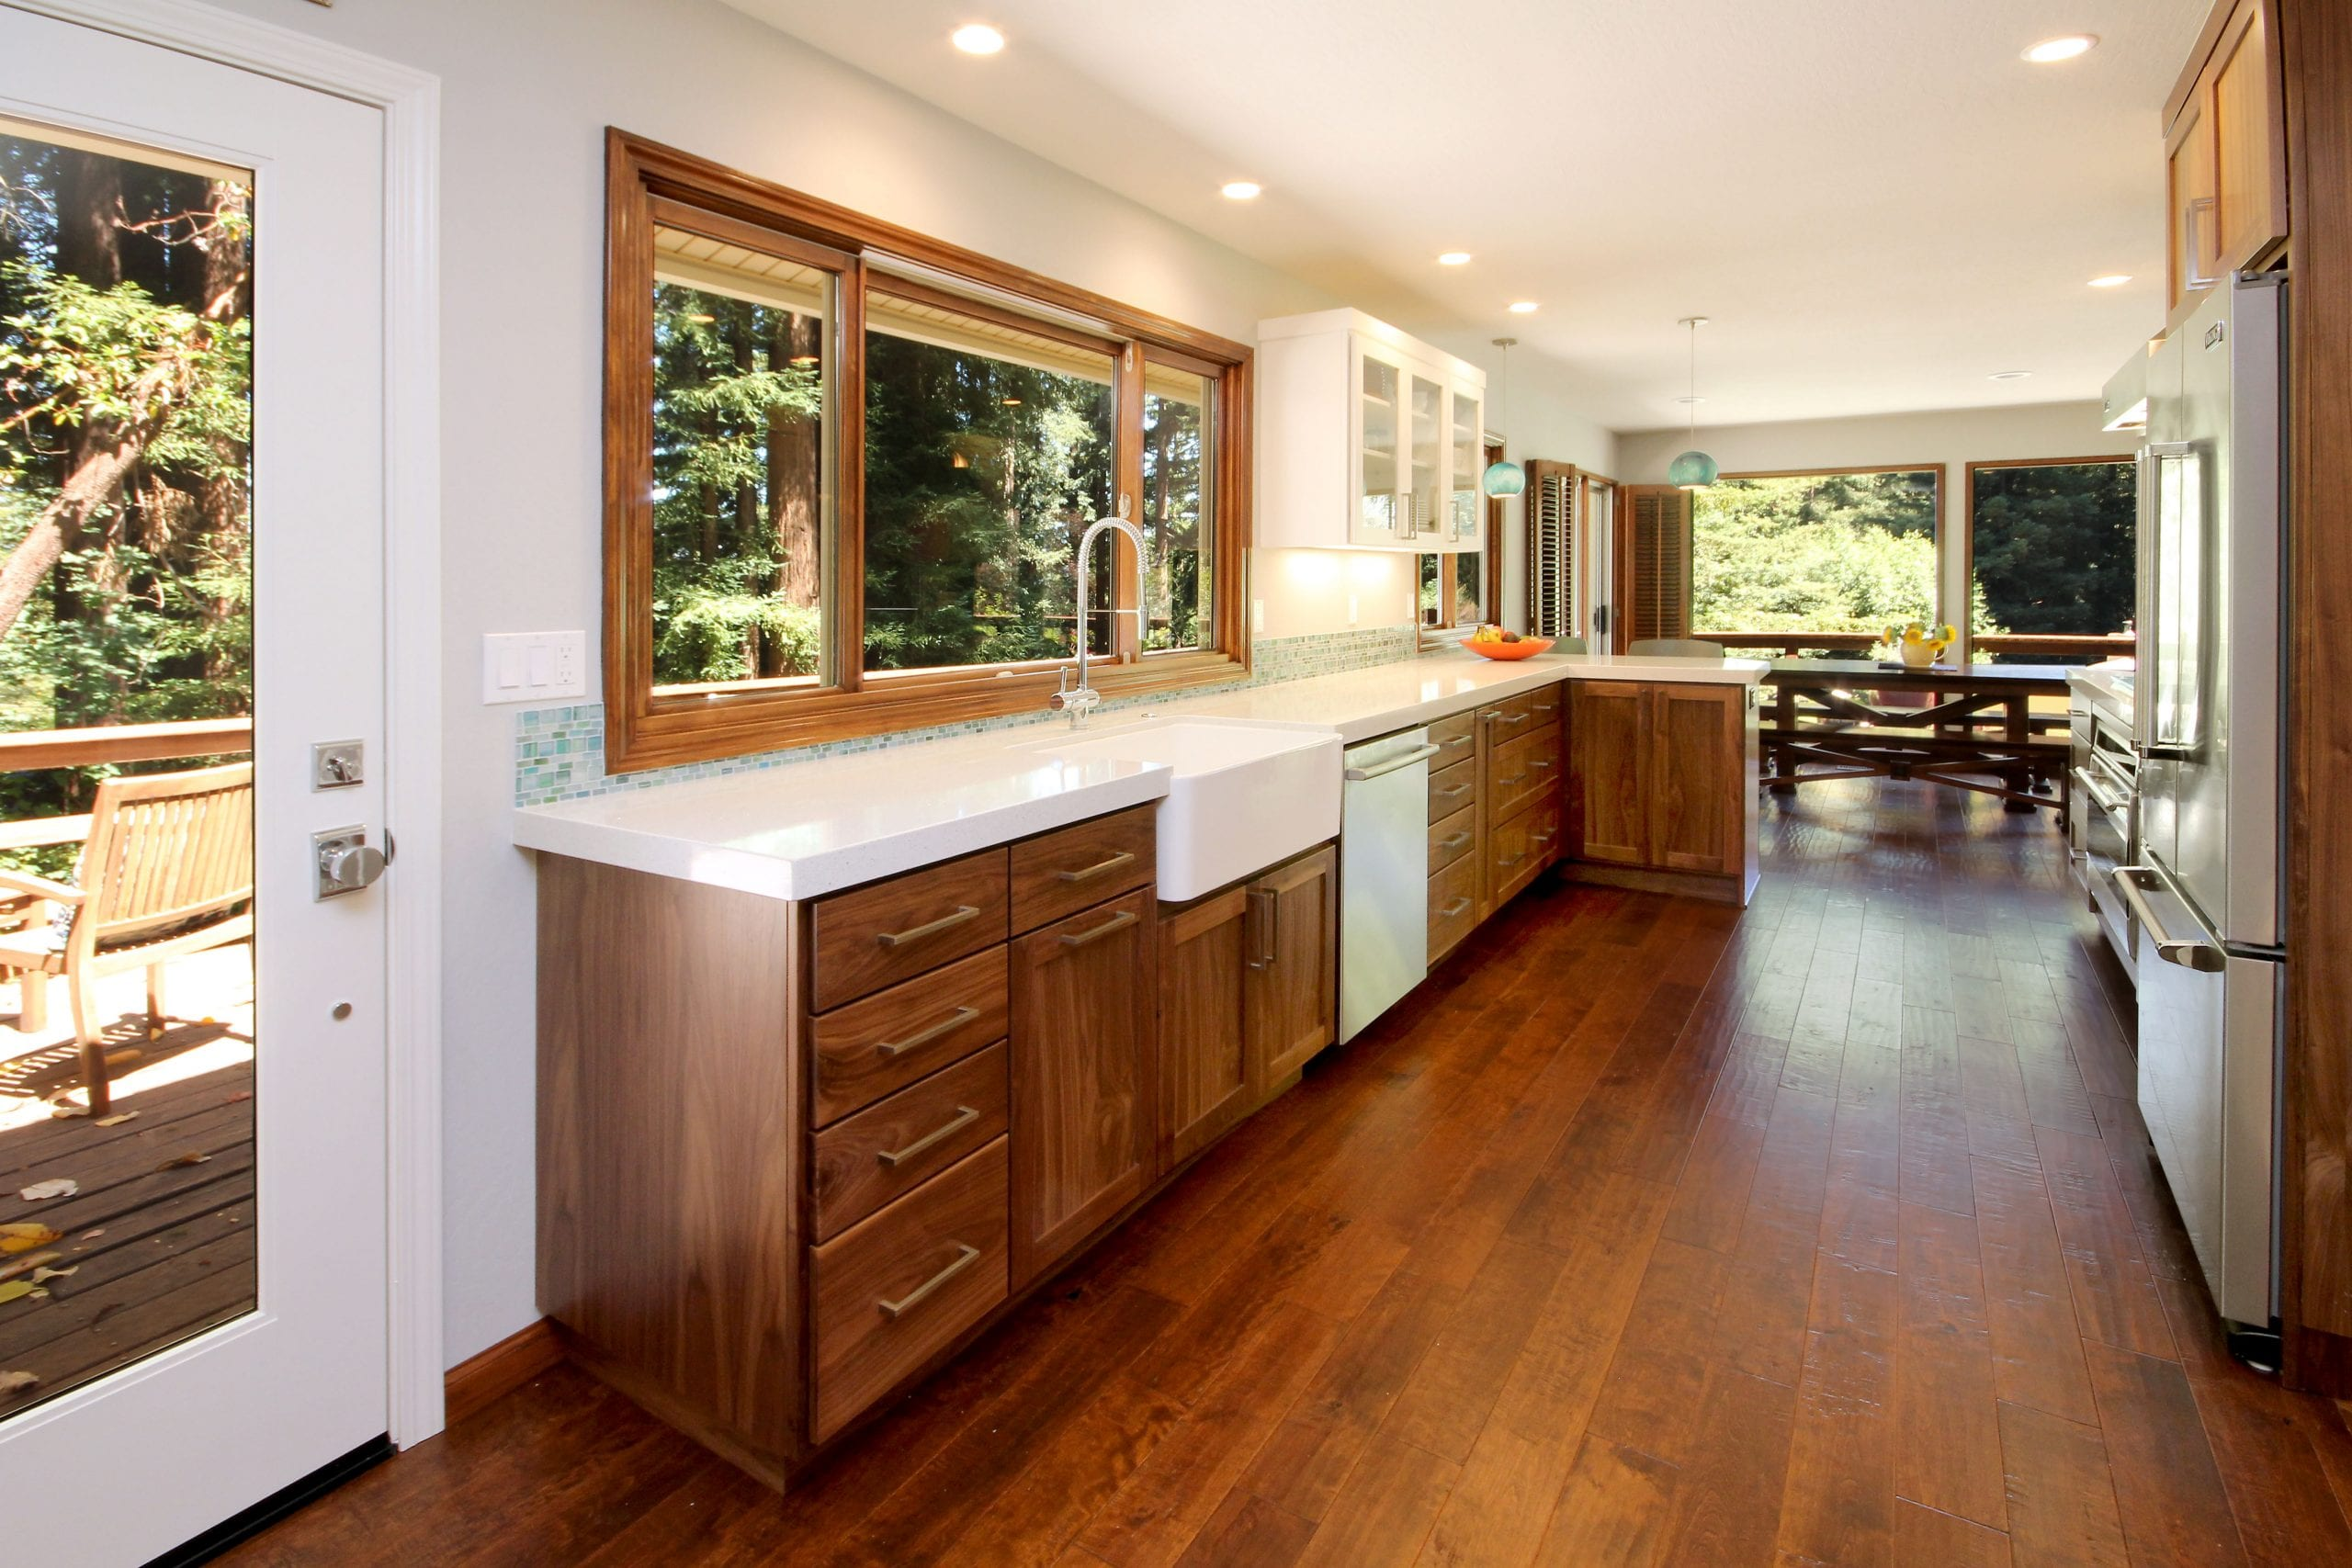 Kitchen remodel after with open footprint and hardwood flooring